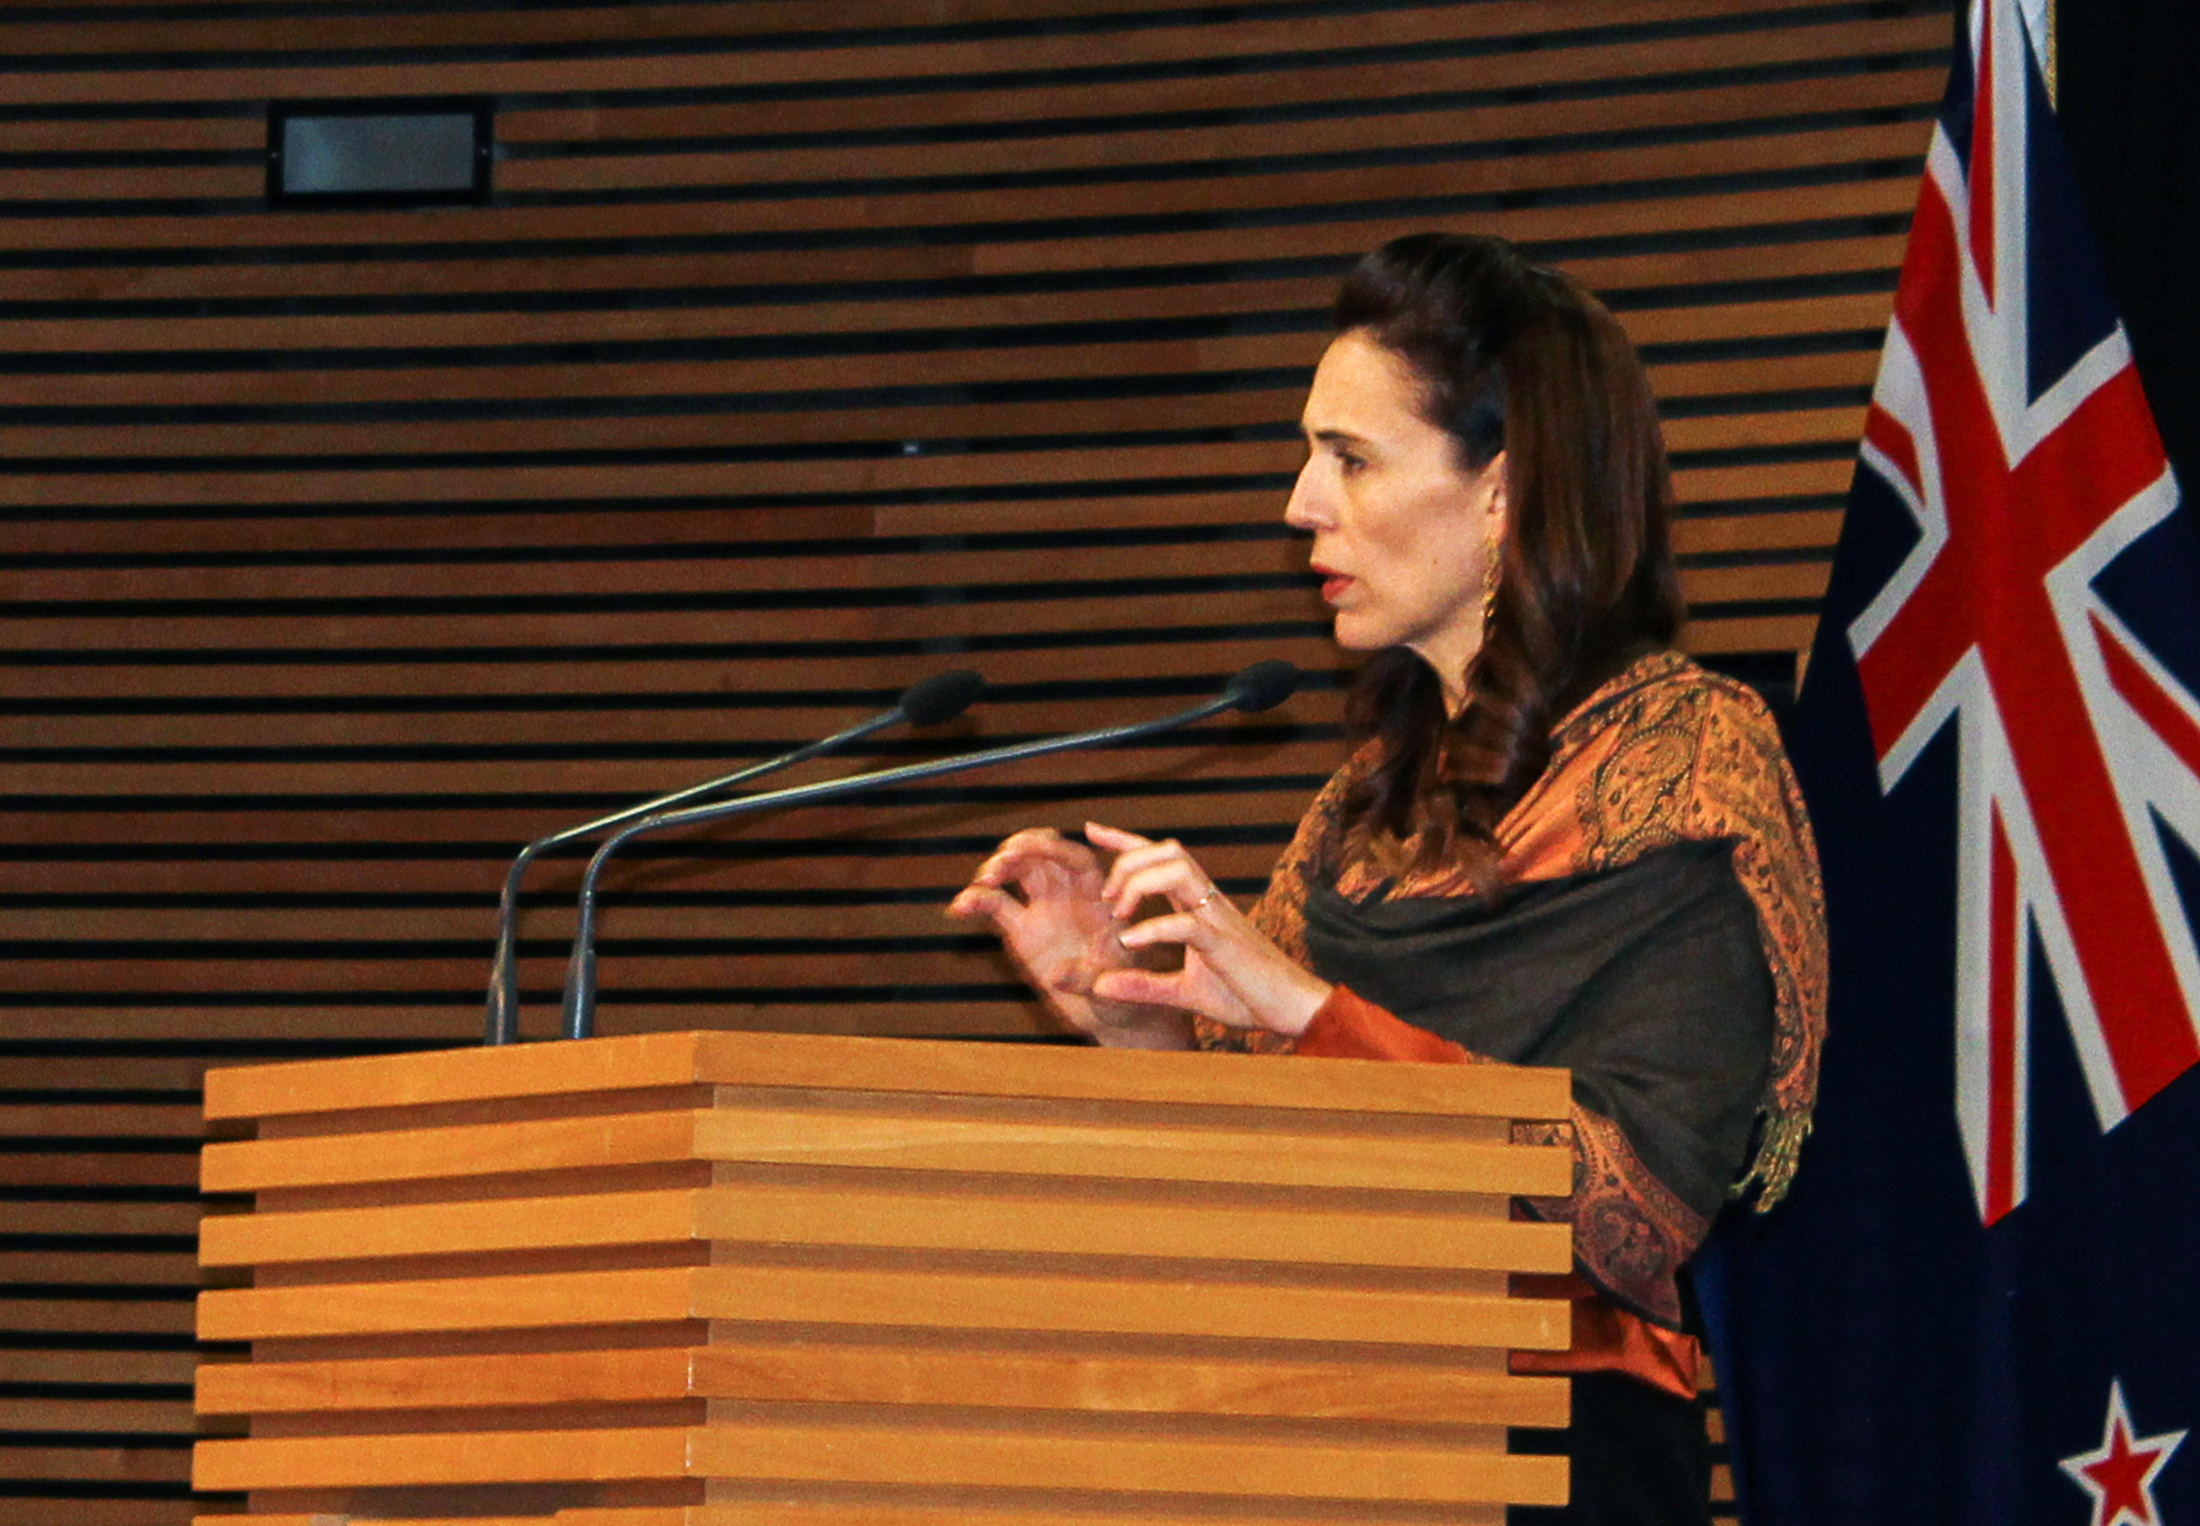 New Zealand's Prime Minister Jacinda Ardern speaks at a news conference on the coronavirus disease (COVID-19) pandemic in Wellington, New Zealand, February 17, 2021. REUTERS/Praveen Menon